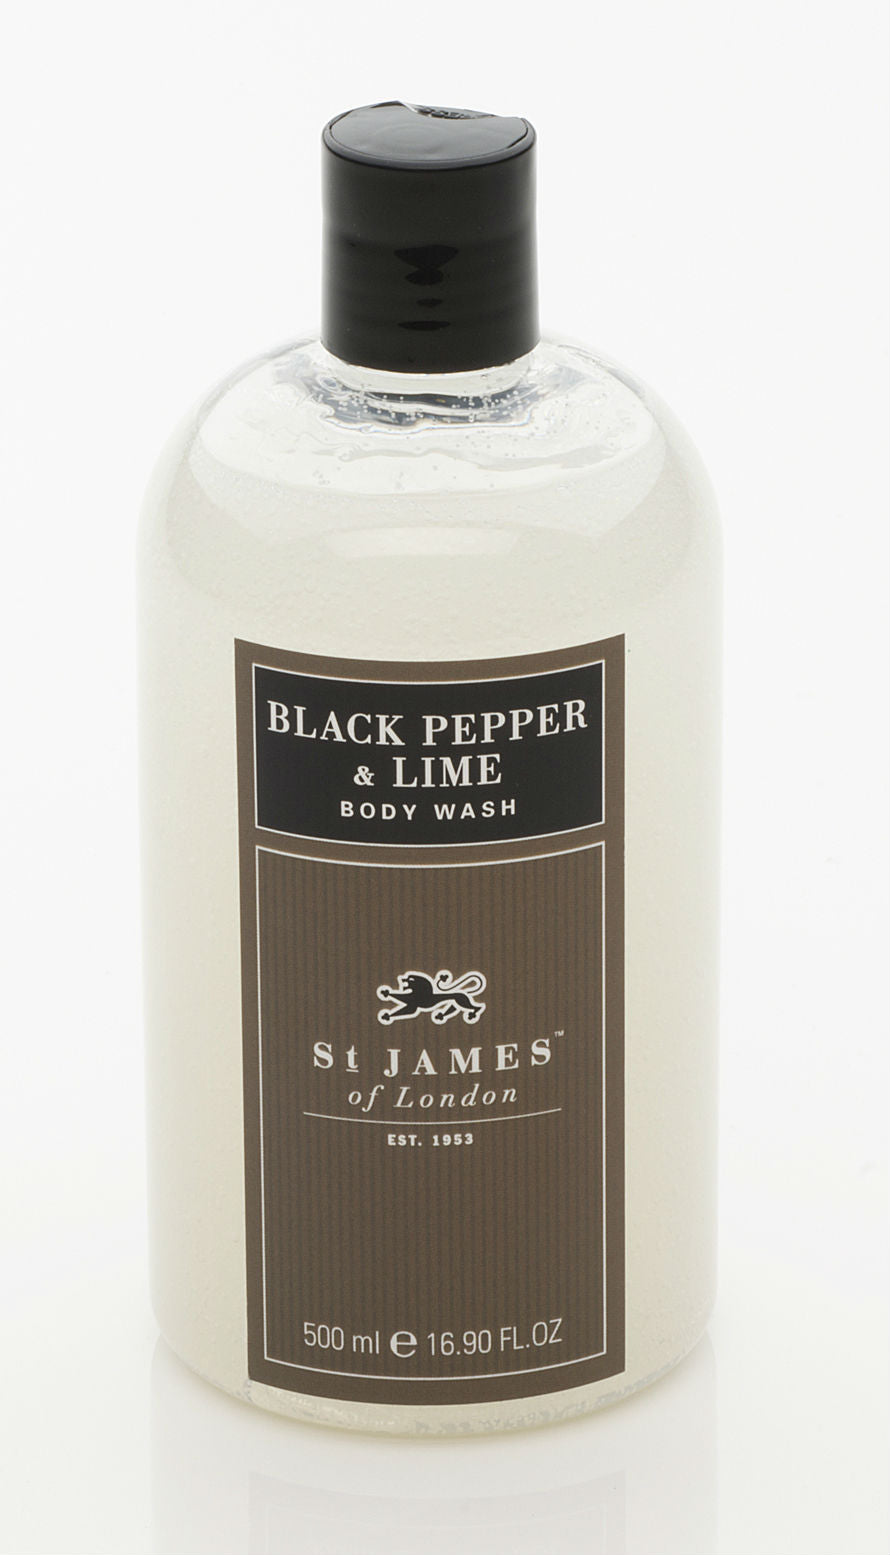 Black Pepper & Lime Body Wash 0.5L (4408954060854)